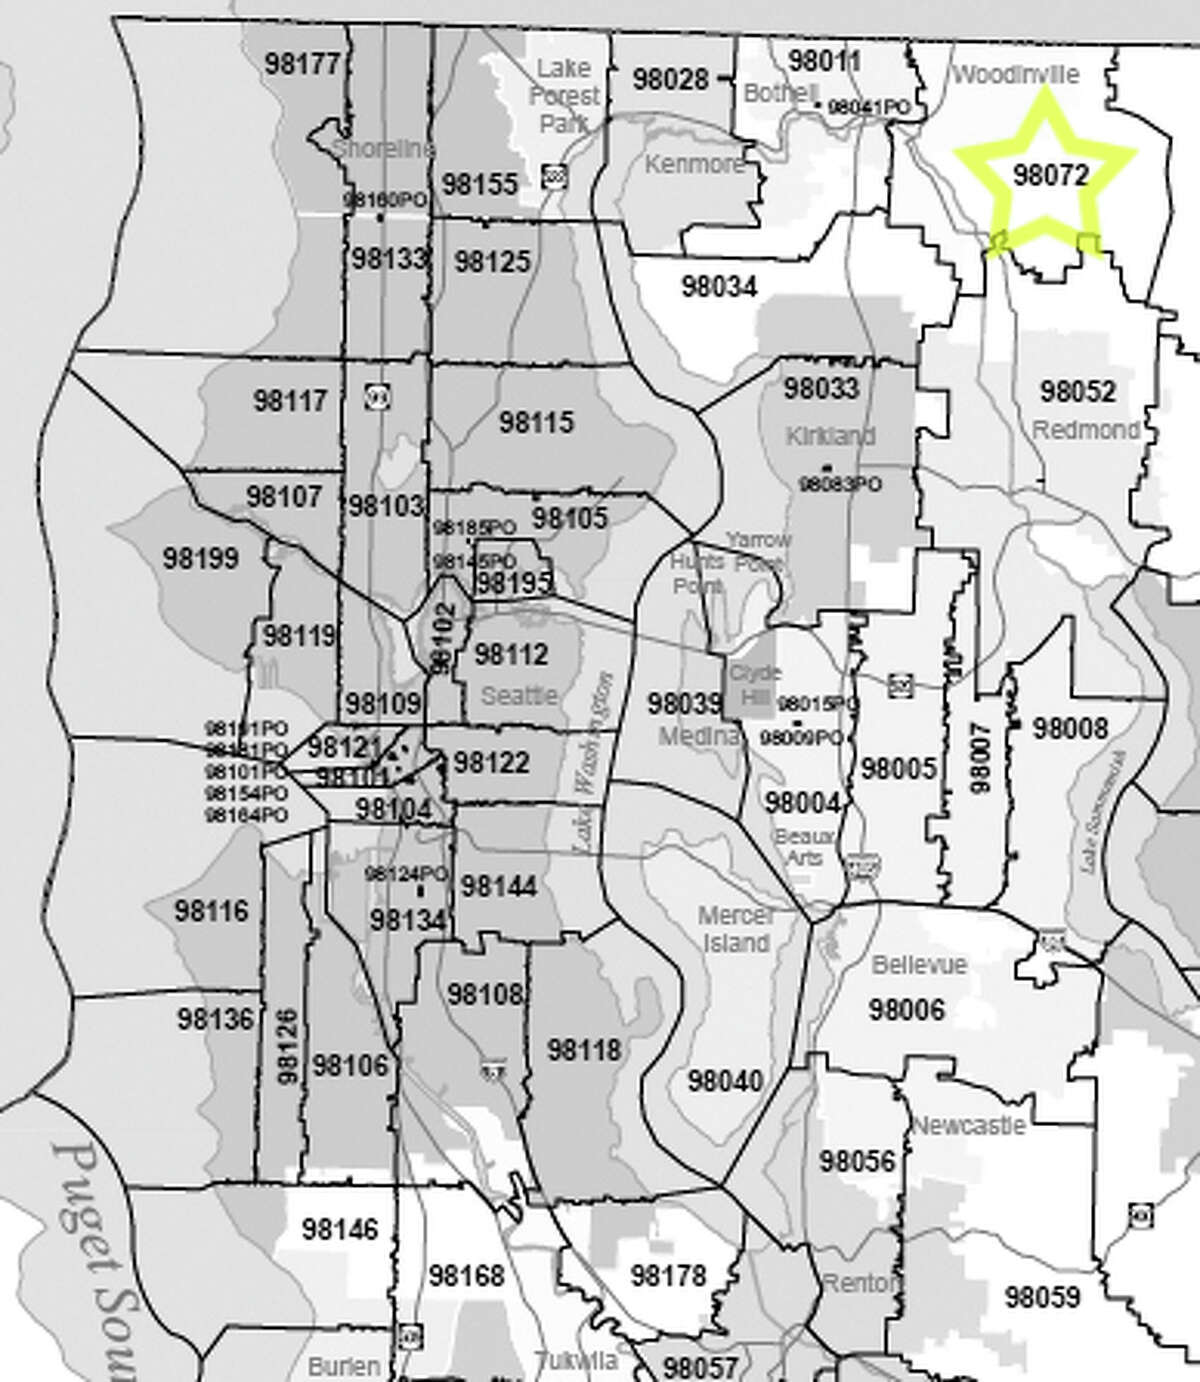 15. 98072: In this Woodinville-area ZIP code, 2.1 percent of households received food stamps.